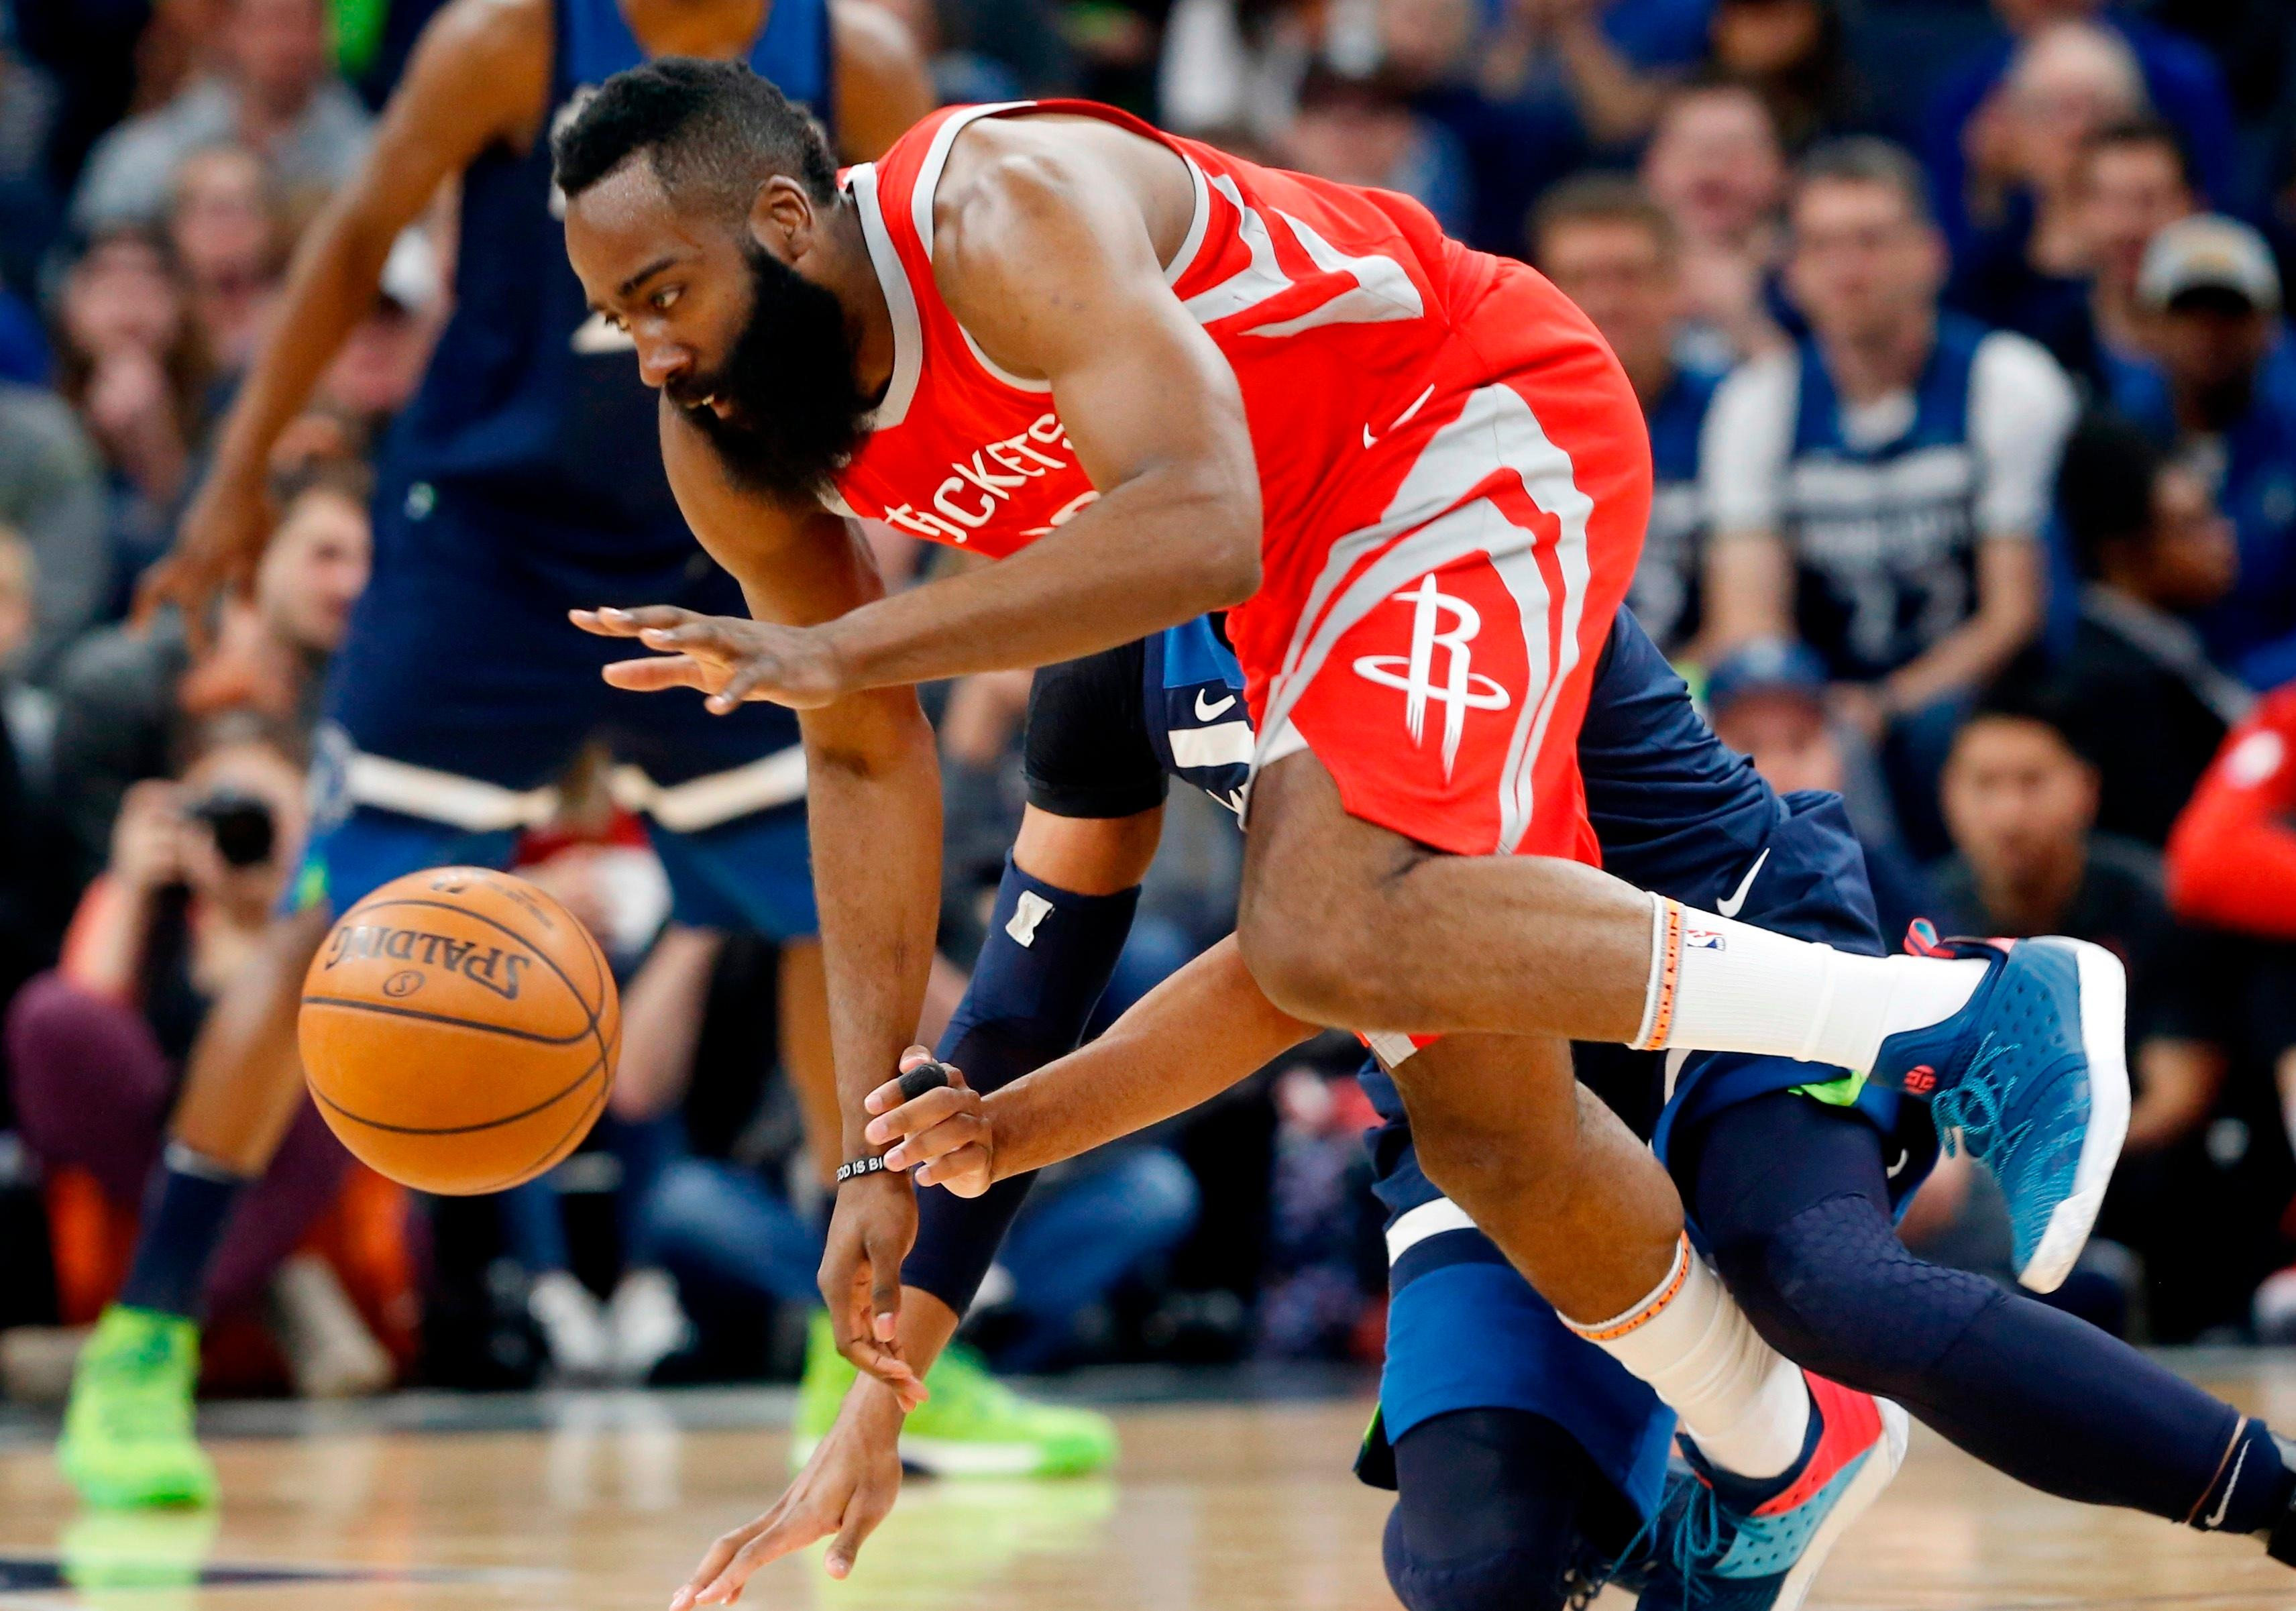 Houston Rockets' James Harden, front, and Minnesota Timberwolves' Taj Gibson become entangled while chasing the ball during the first half of Game 4 in an NBA basketball first-round playoff series Monday, April 23, 2018, in Minneapolis. (AP Photo/Jim Mone)